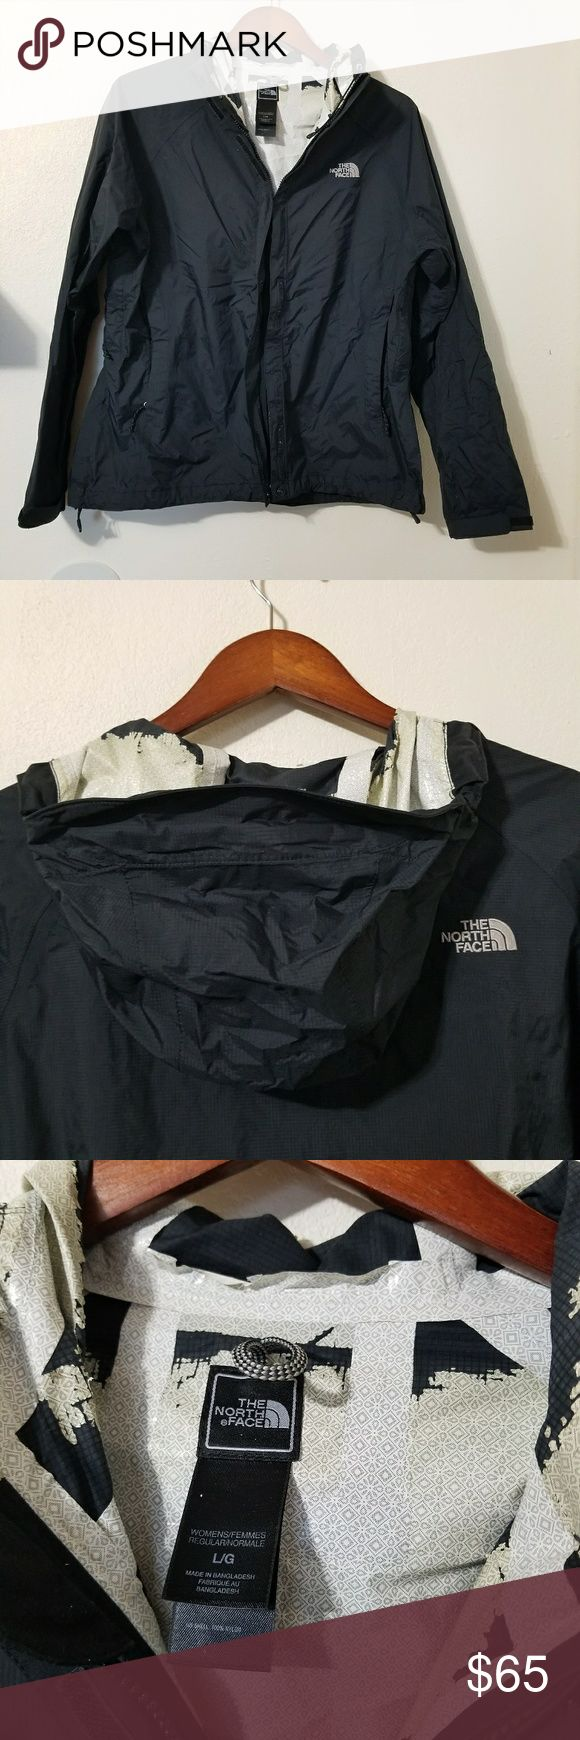 The North Face Classic Black Zip Rain Jacket Large Womens rain jacket with full zip with velcro. Zip pockets. Adjustable drawstring hem. Hood with extended visor to keep the rain out. Peeling on the inside from the wash. Still great condition on the outside! Tagged as a womens large. The North Face Jackets & Coats